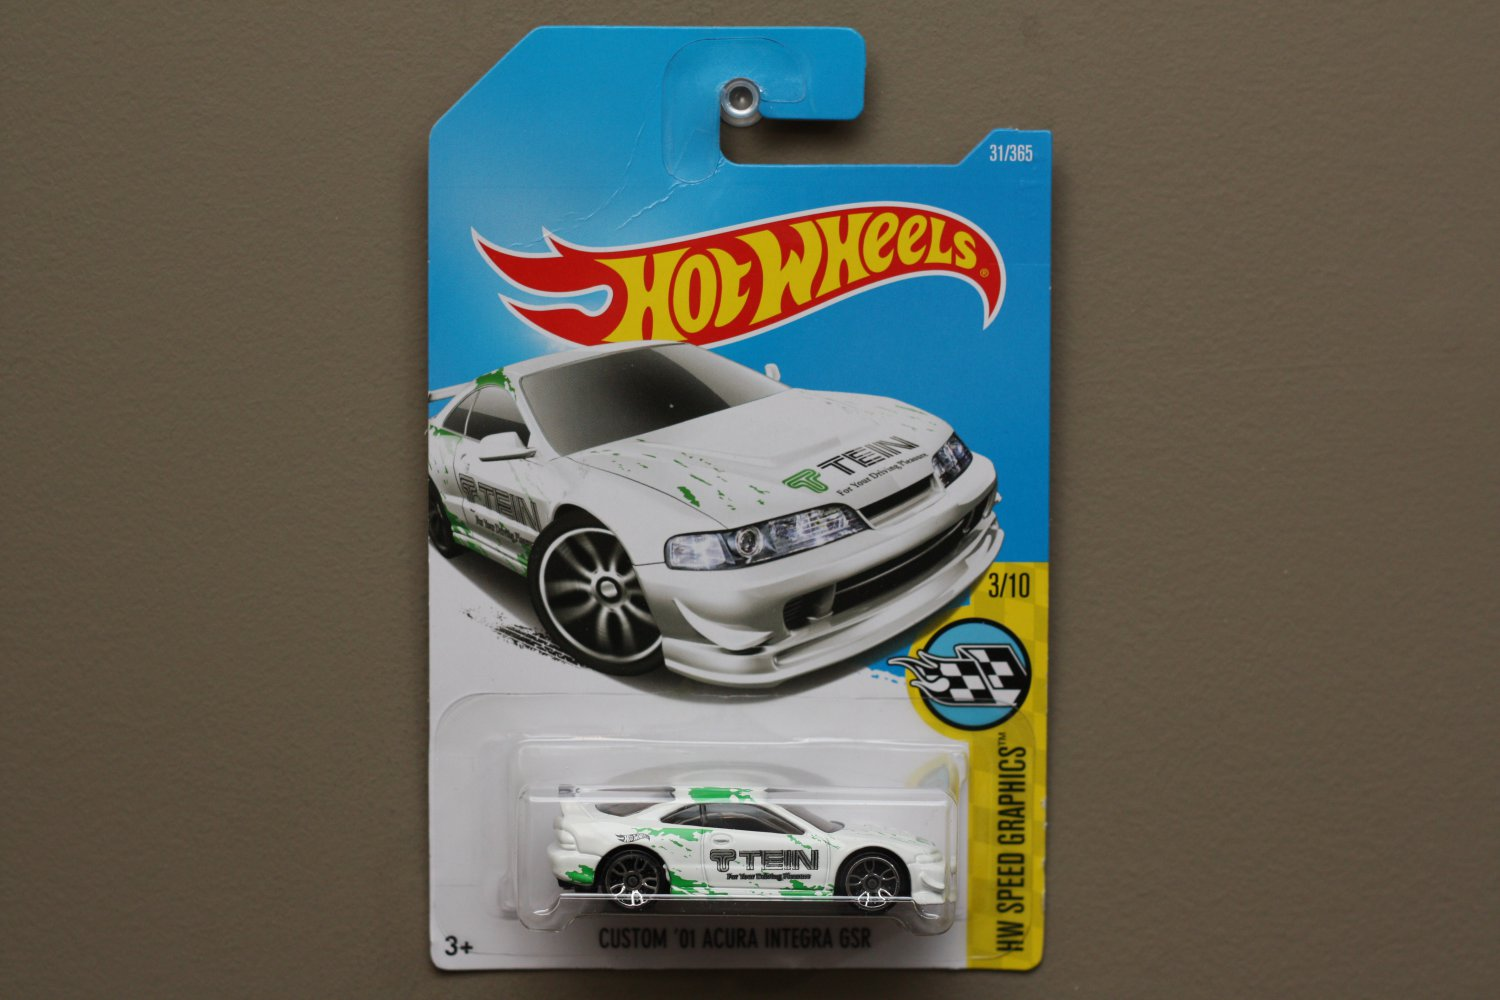 Hot Wheels 2017 HW Speed Graphics Custom '01 Acura Integra GSR (white) (SEE CONDITION)